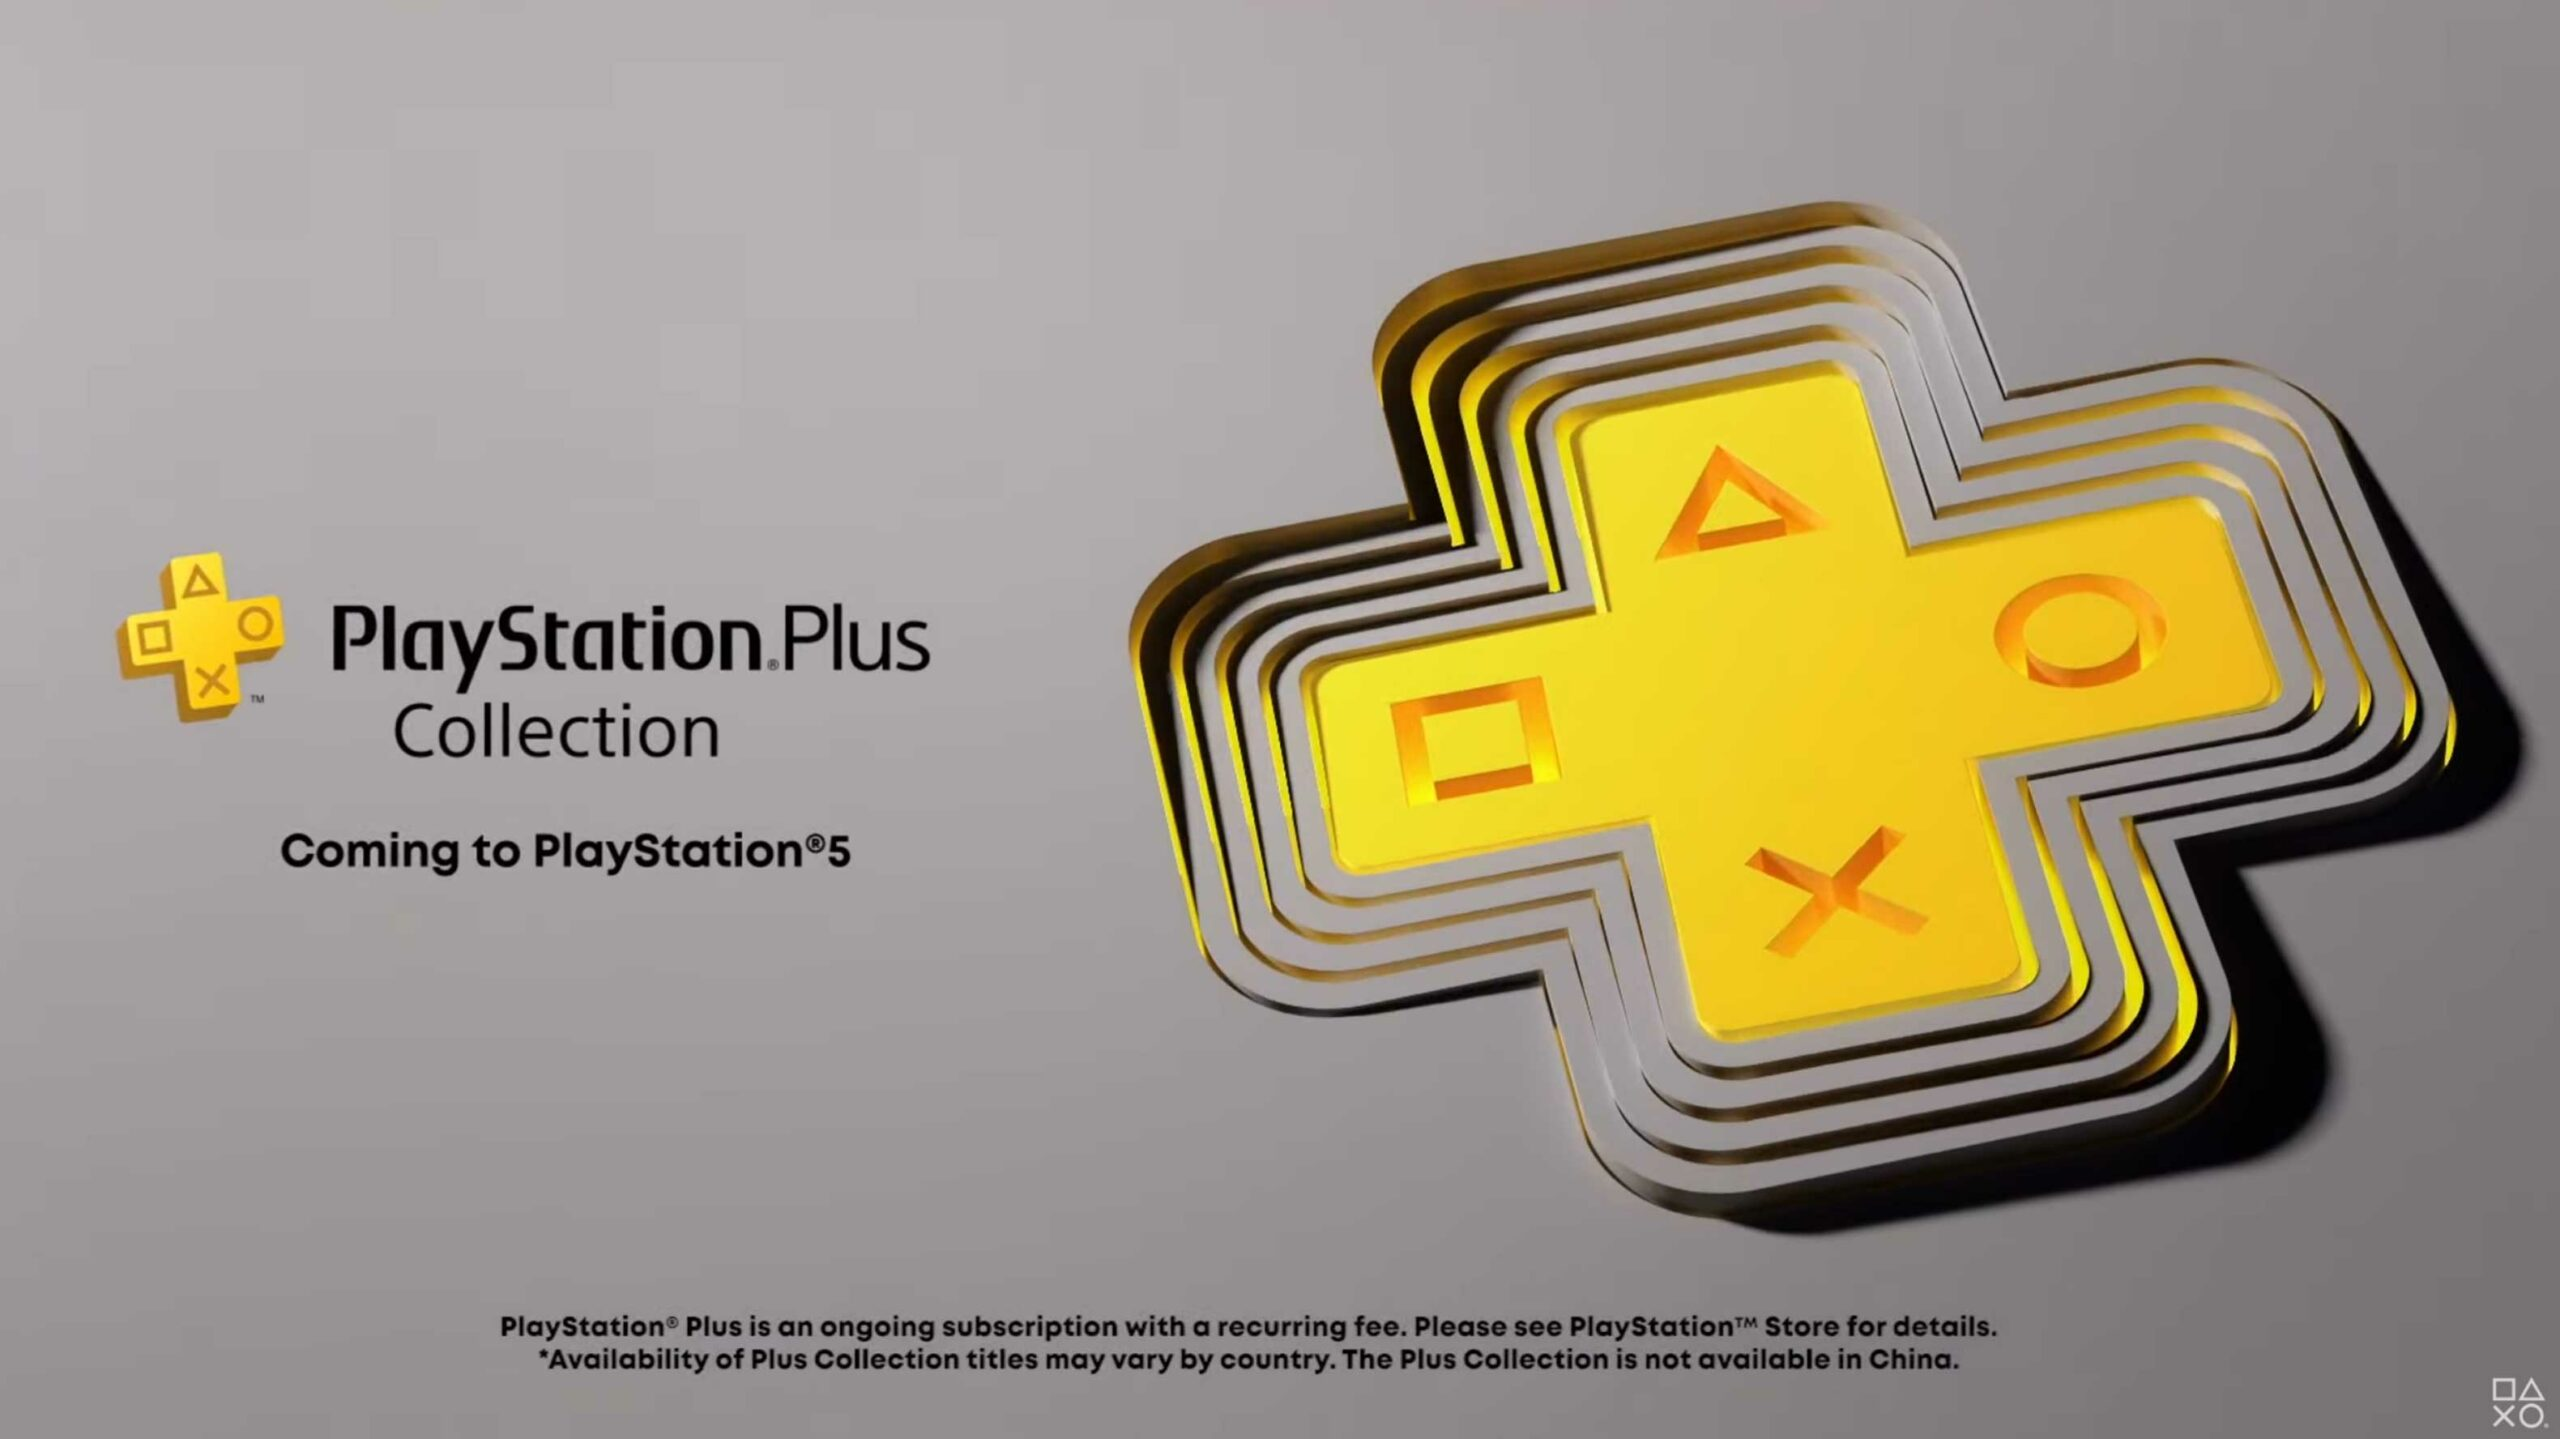 Playstation 5 To Offer Free Backward Compatible Ps4 Games Through Playstation Plus Collection